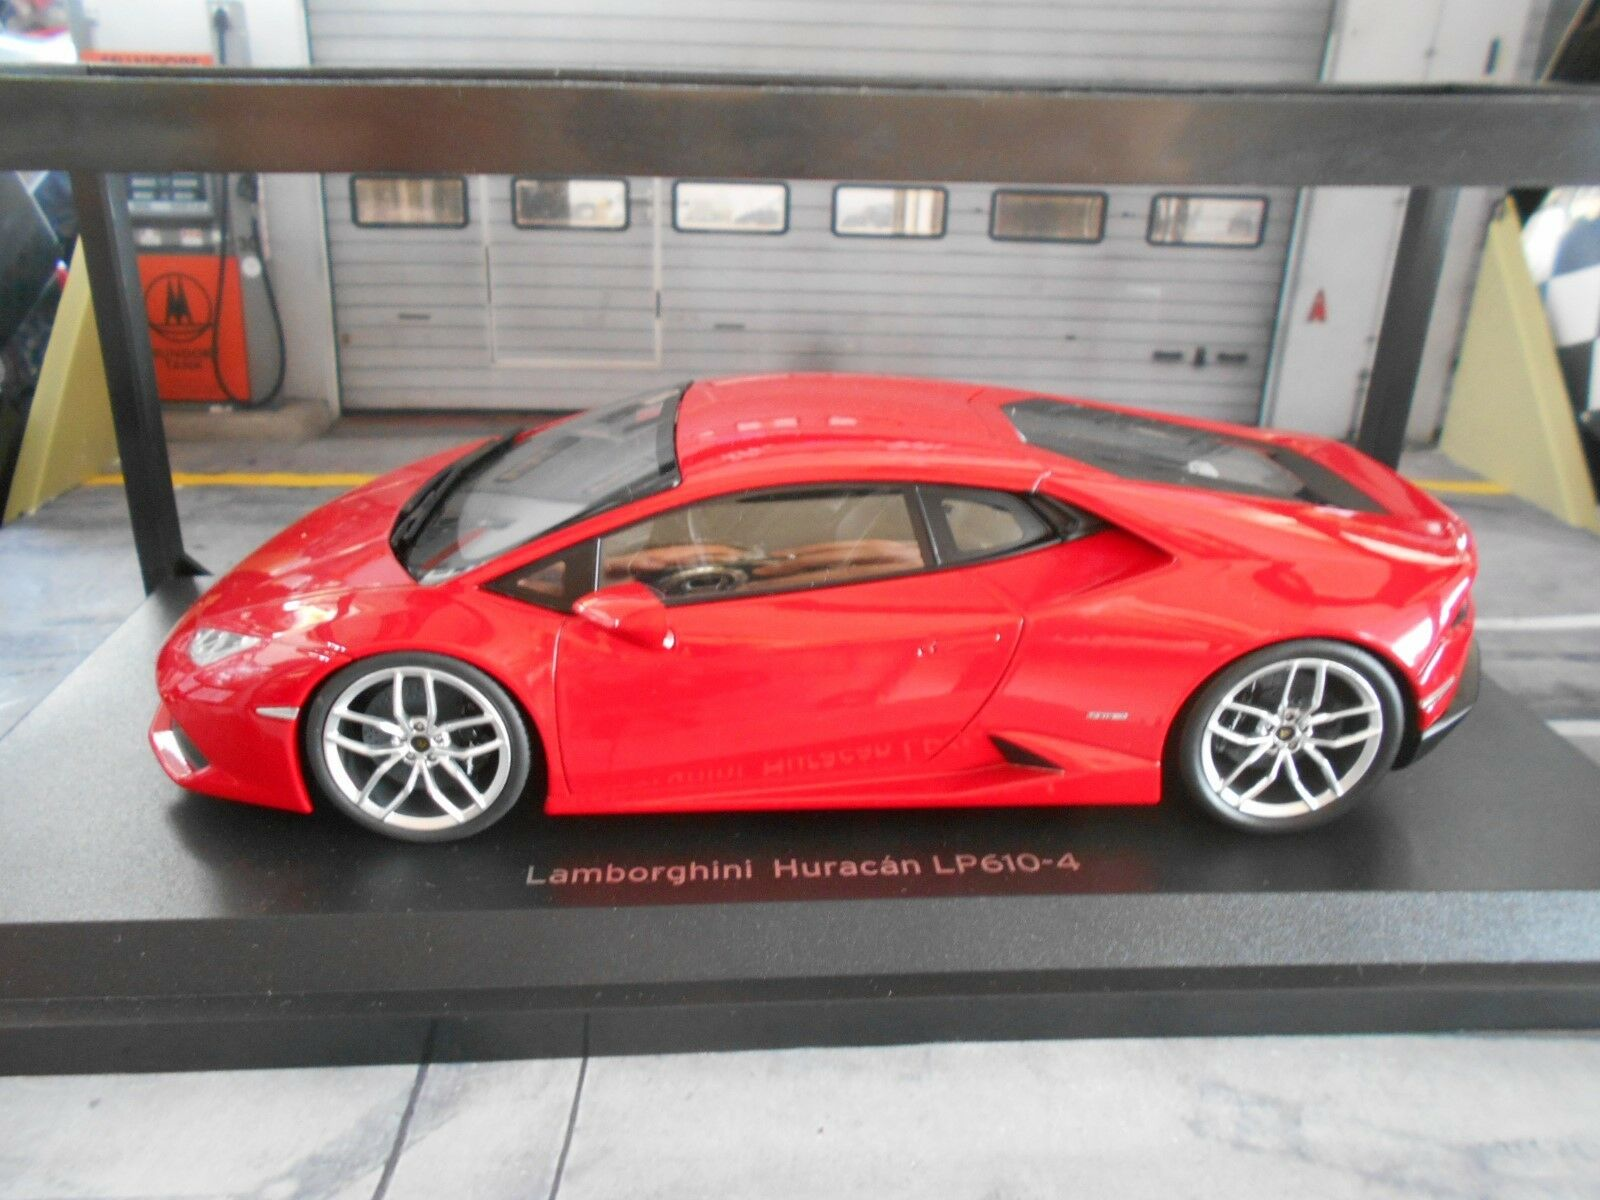 Lamborghini Lamborghini Lamborghini Huracan LP 610 lp610-4 lp610 -4 ROSSO rosso 2016 ousia KYOSHO 1 18 331113